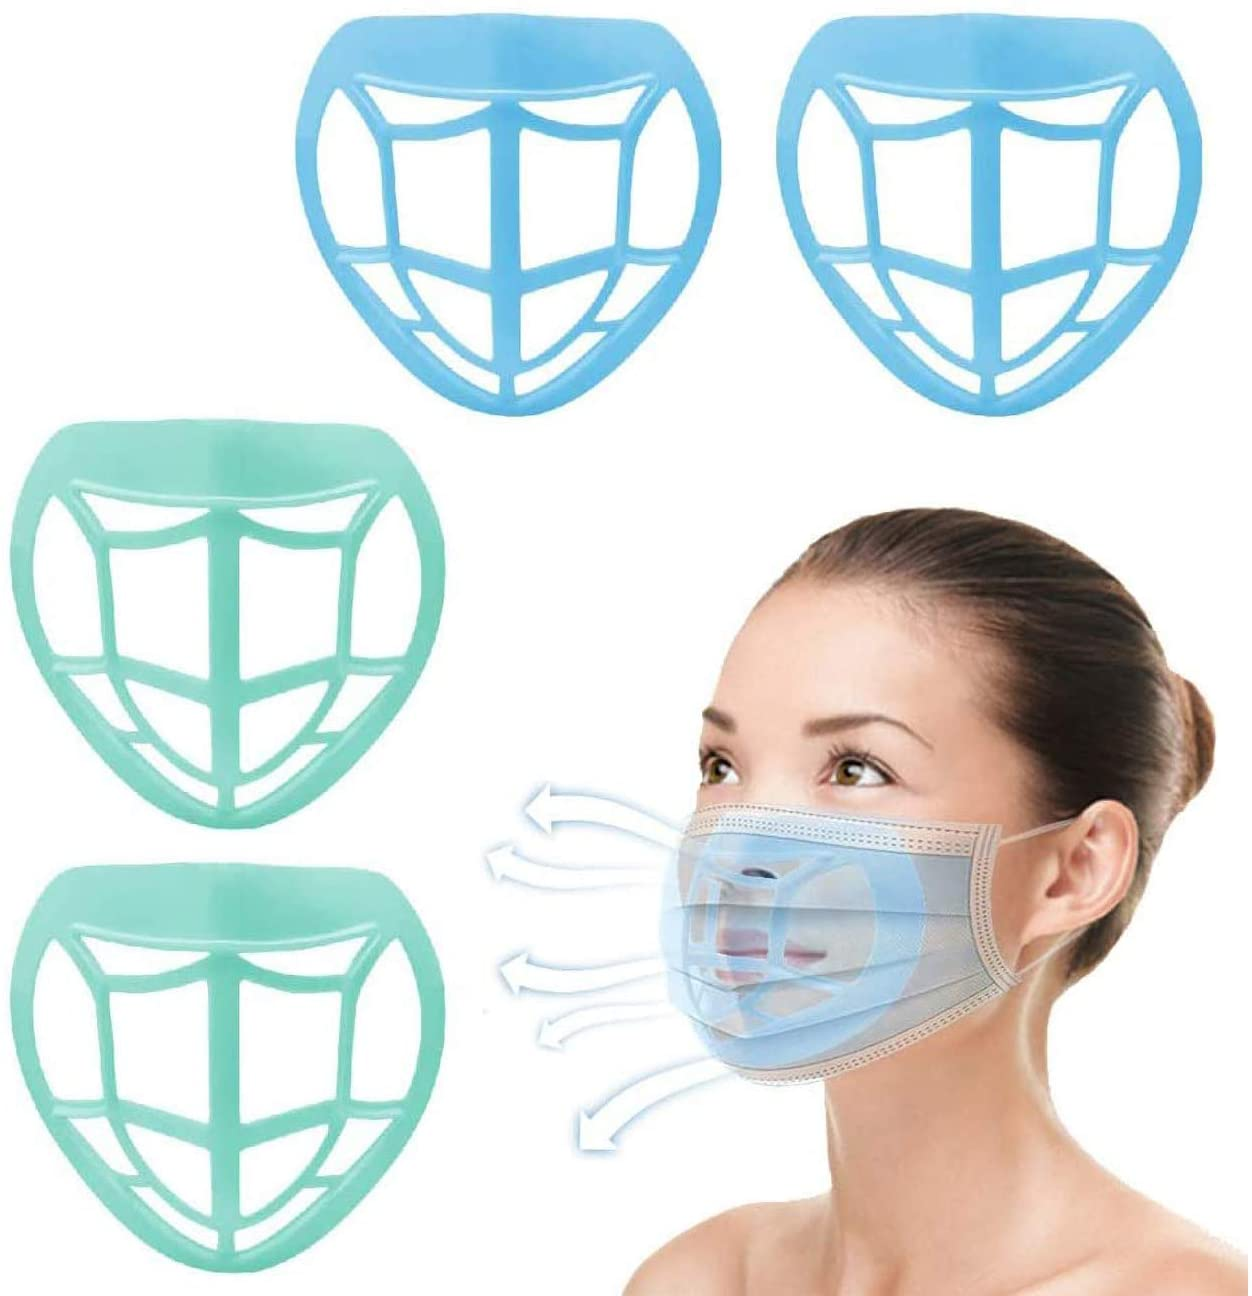 ZHOPPA Cool Mas-k Bracket - Inner Support Frame - Nose Pads - Prevent Makeup Removal - Protect Lipstick - Enhance Breathing Space - Helps to Breathing Comfortably Washable Reusable (4, Mixed color)